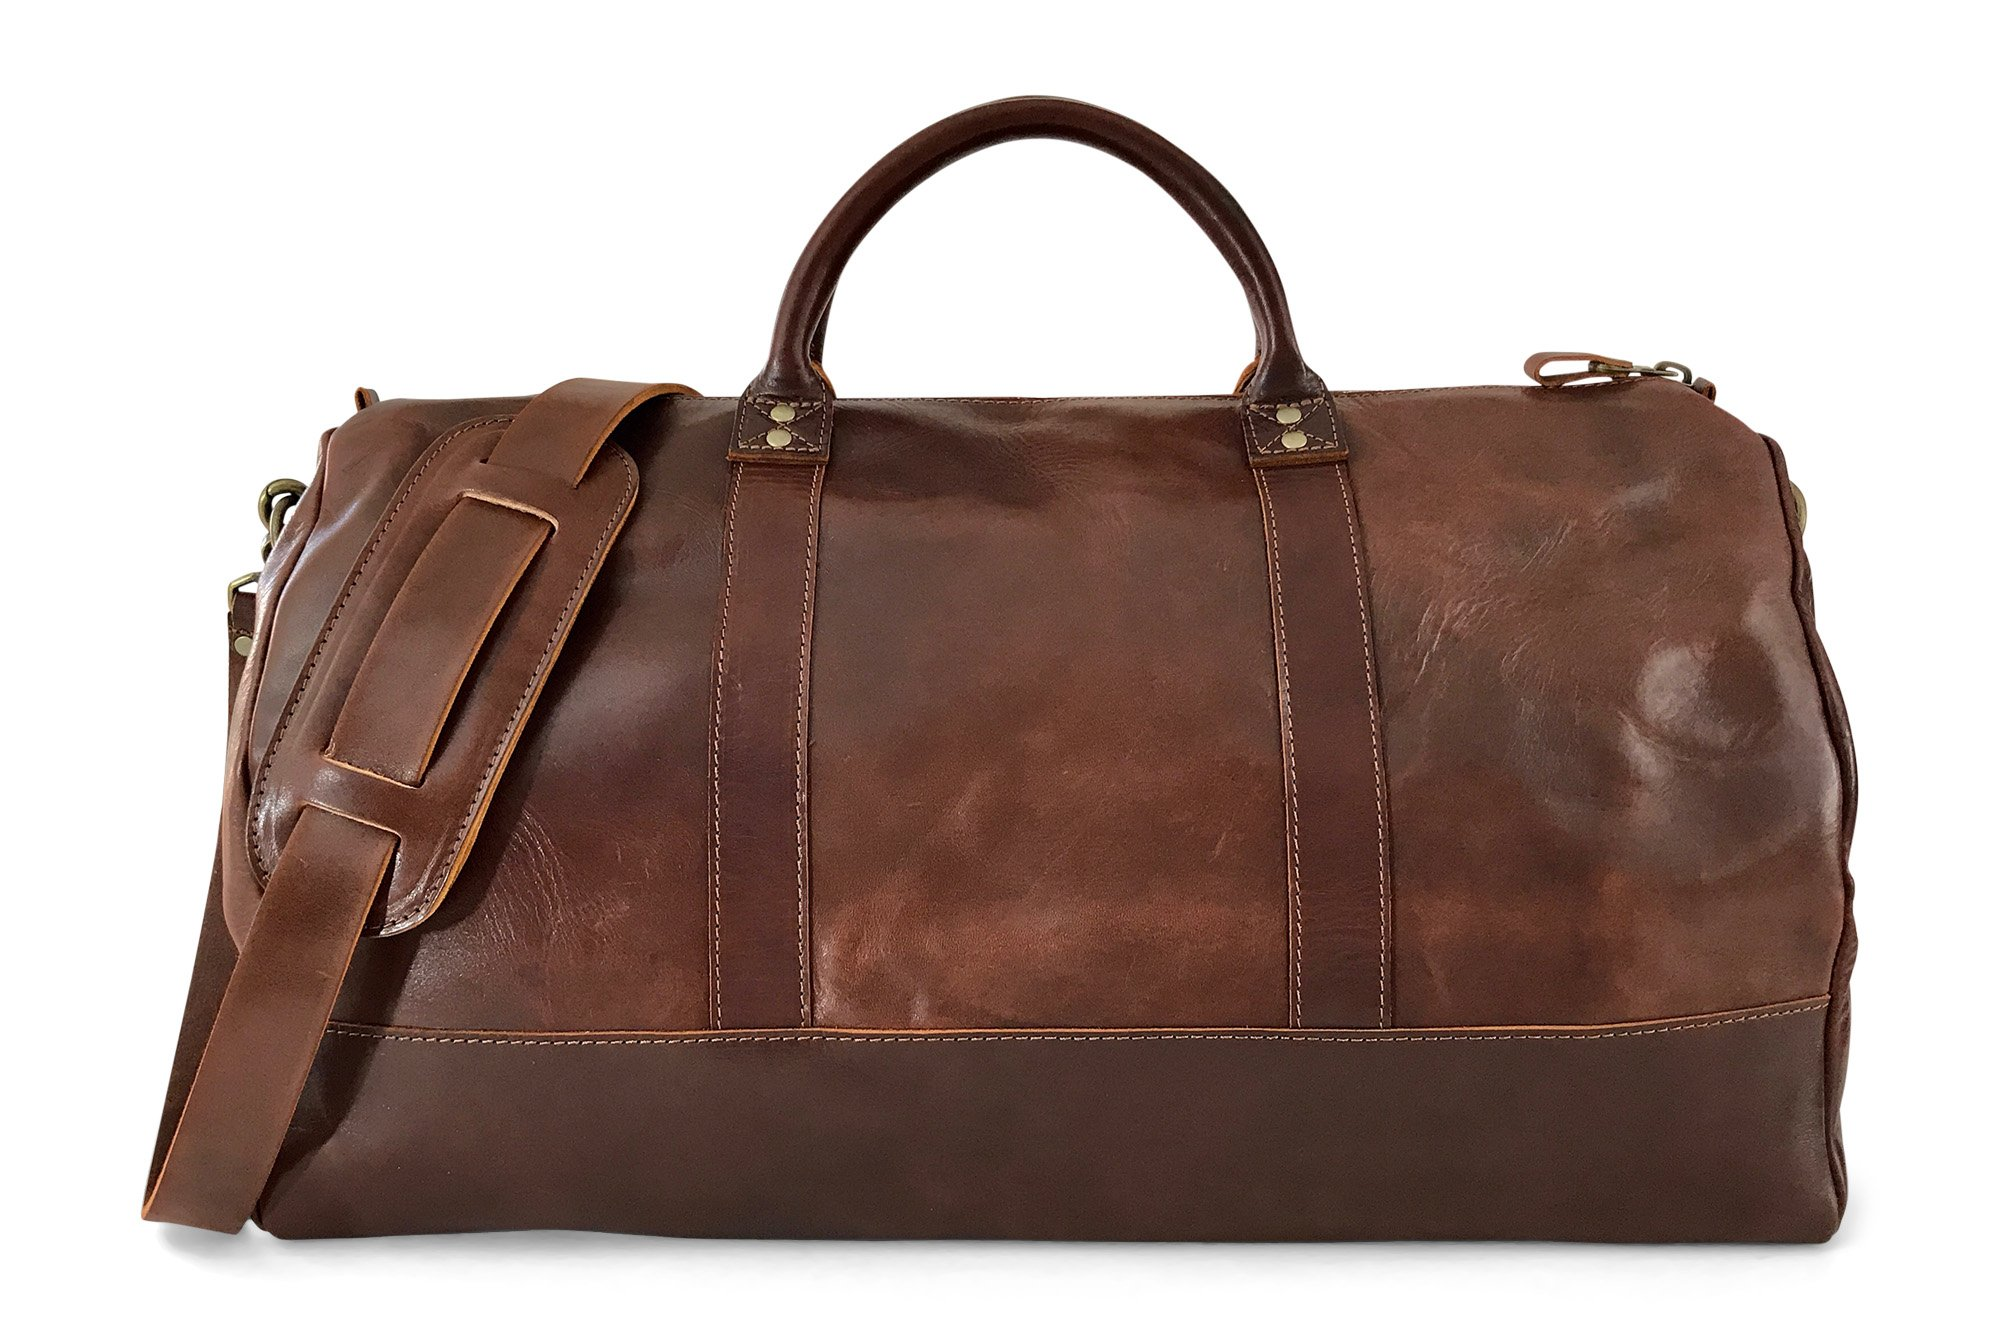 Vintage Full Grain Leather Duffle Bag & Weekend Carryall by Jackson Wayne (Vintage Brown) by Jackson Wayne (Image #1)